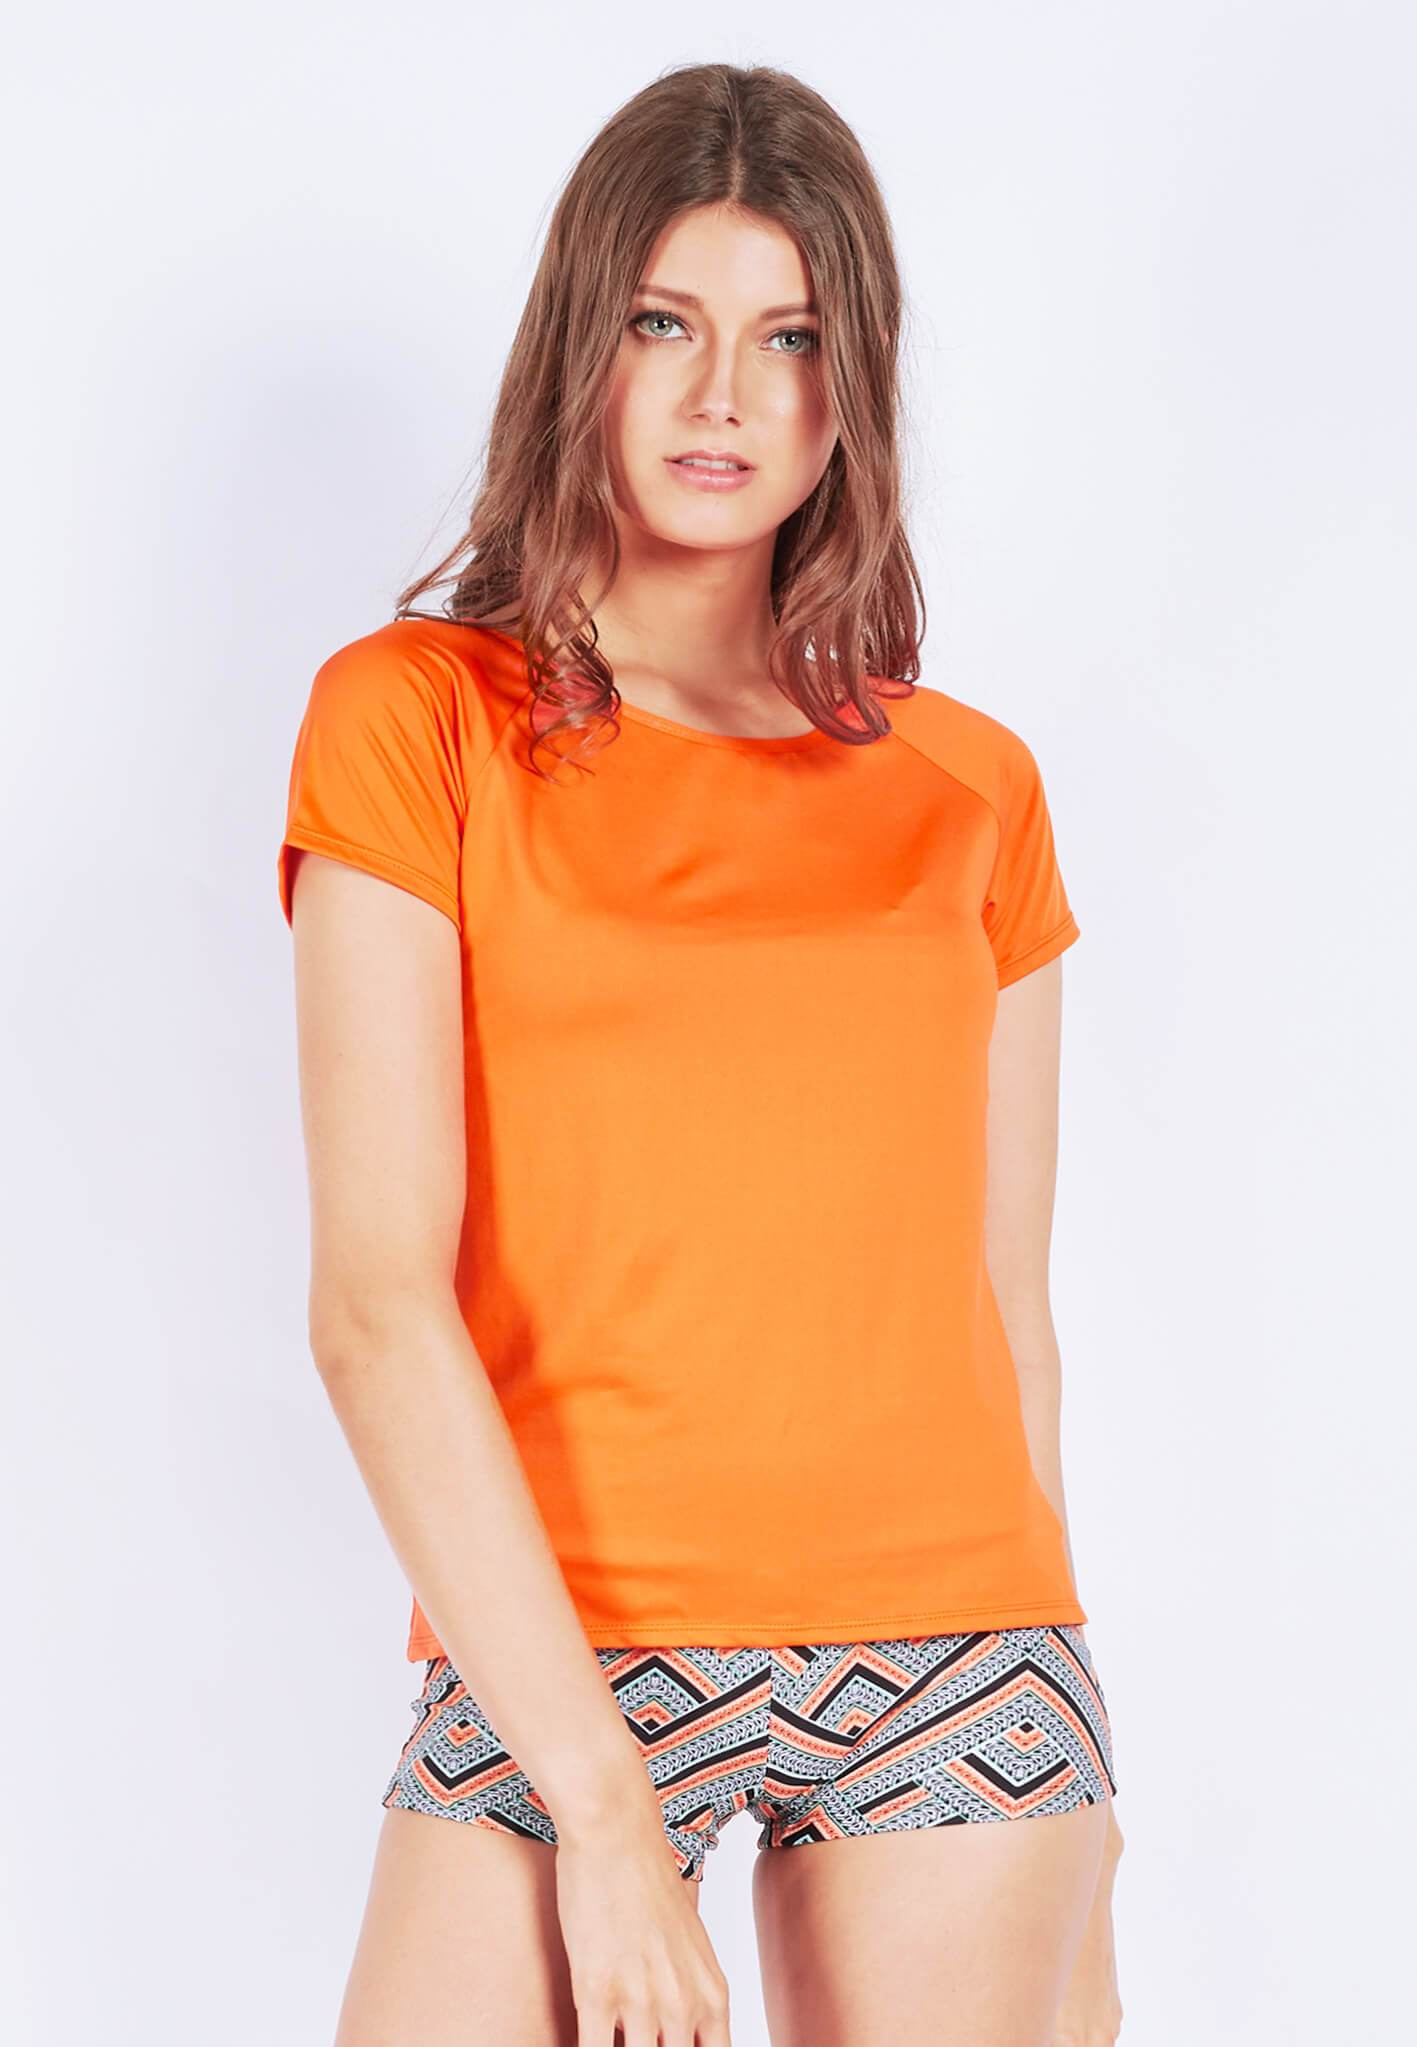 FUNFIT Power-Up Tee in Cider Orange (S - XL)